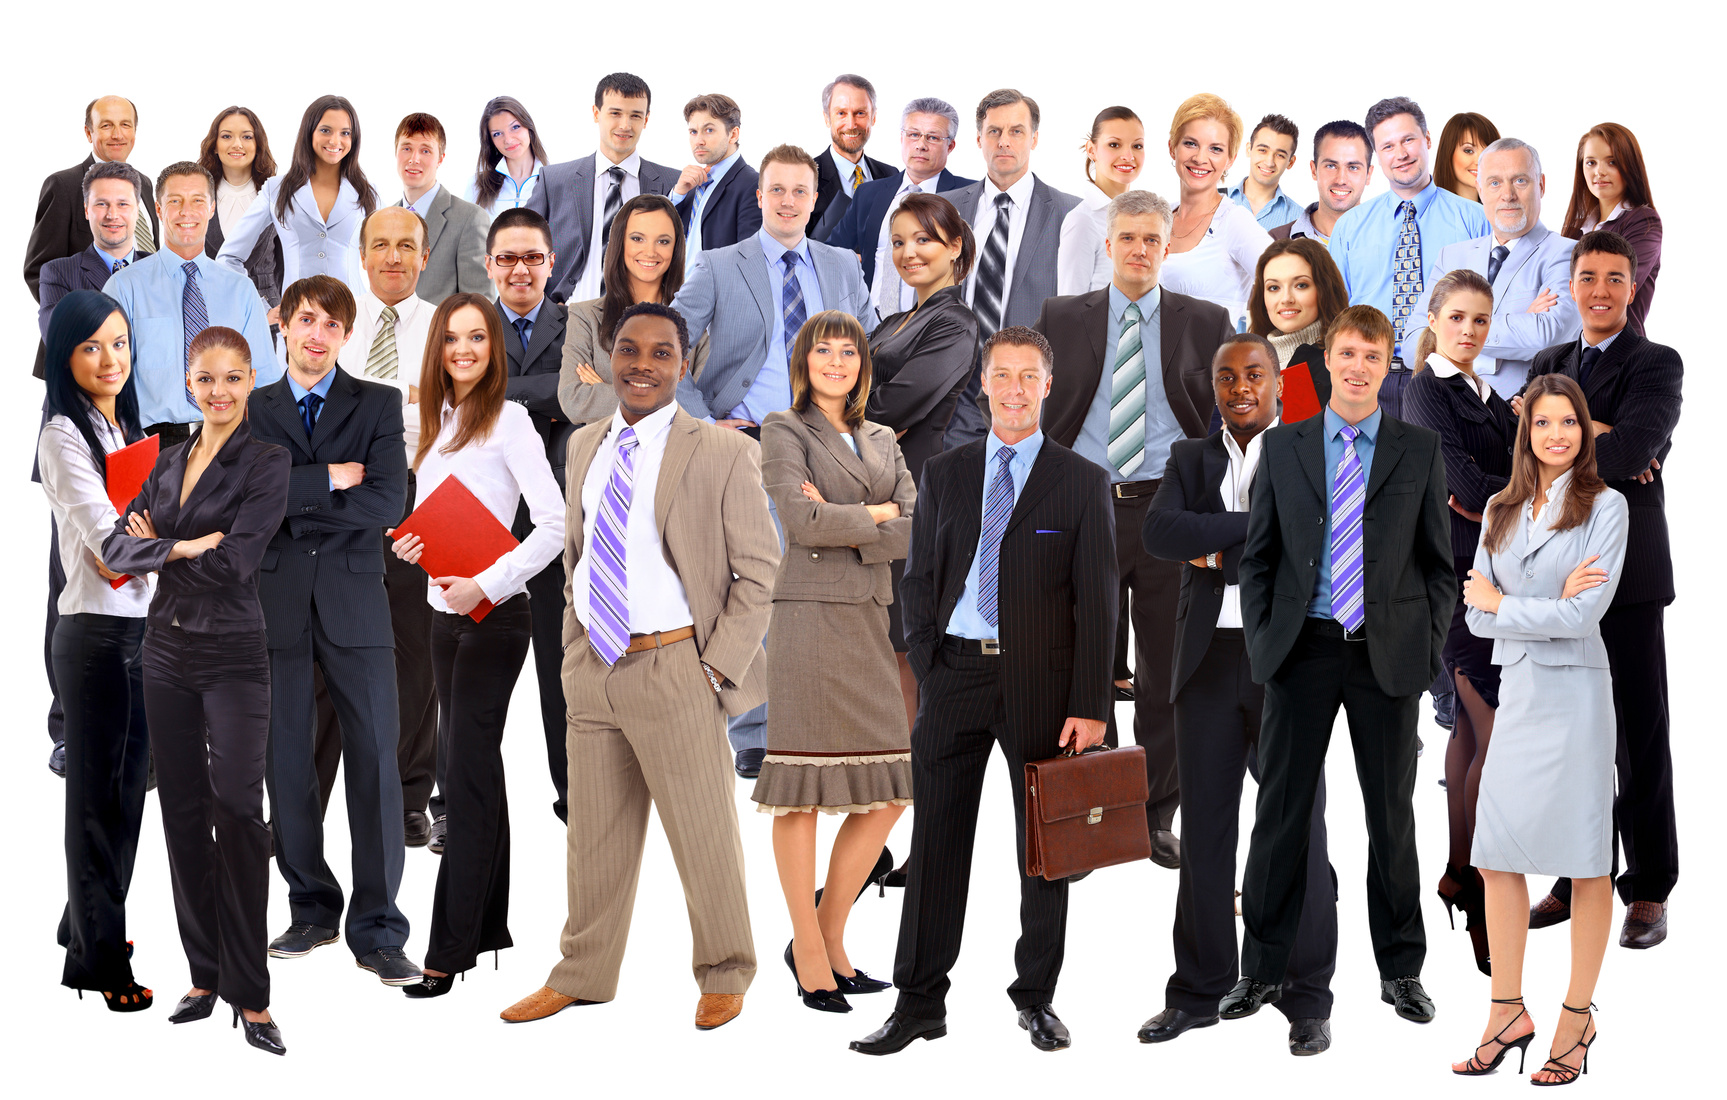 are you a resource or nuisance to your employer brojid world